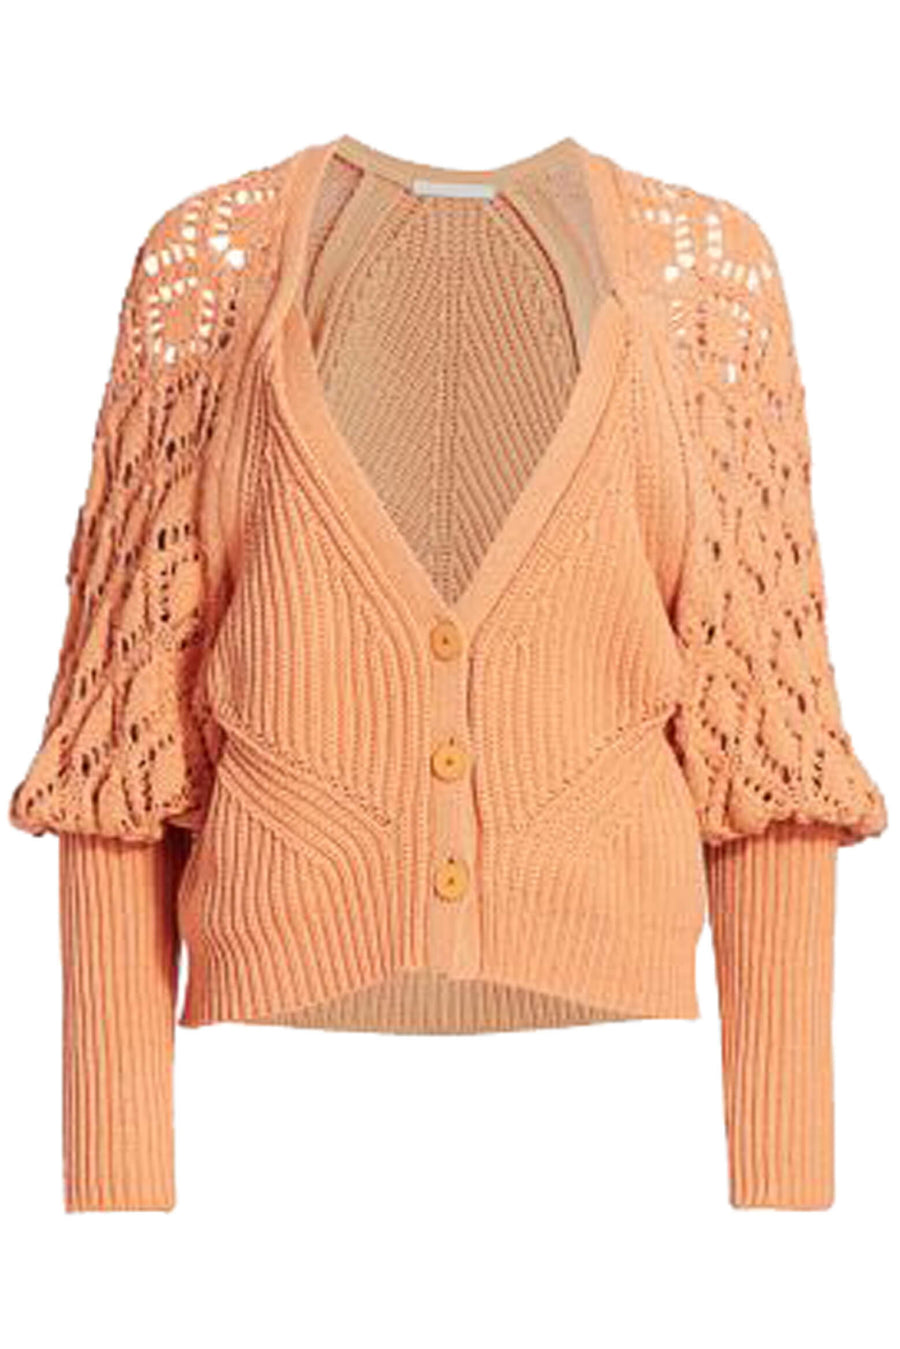 Adeline Directional Rib Cardigan by Jonathan Simkhai at The New Trend